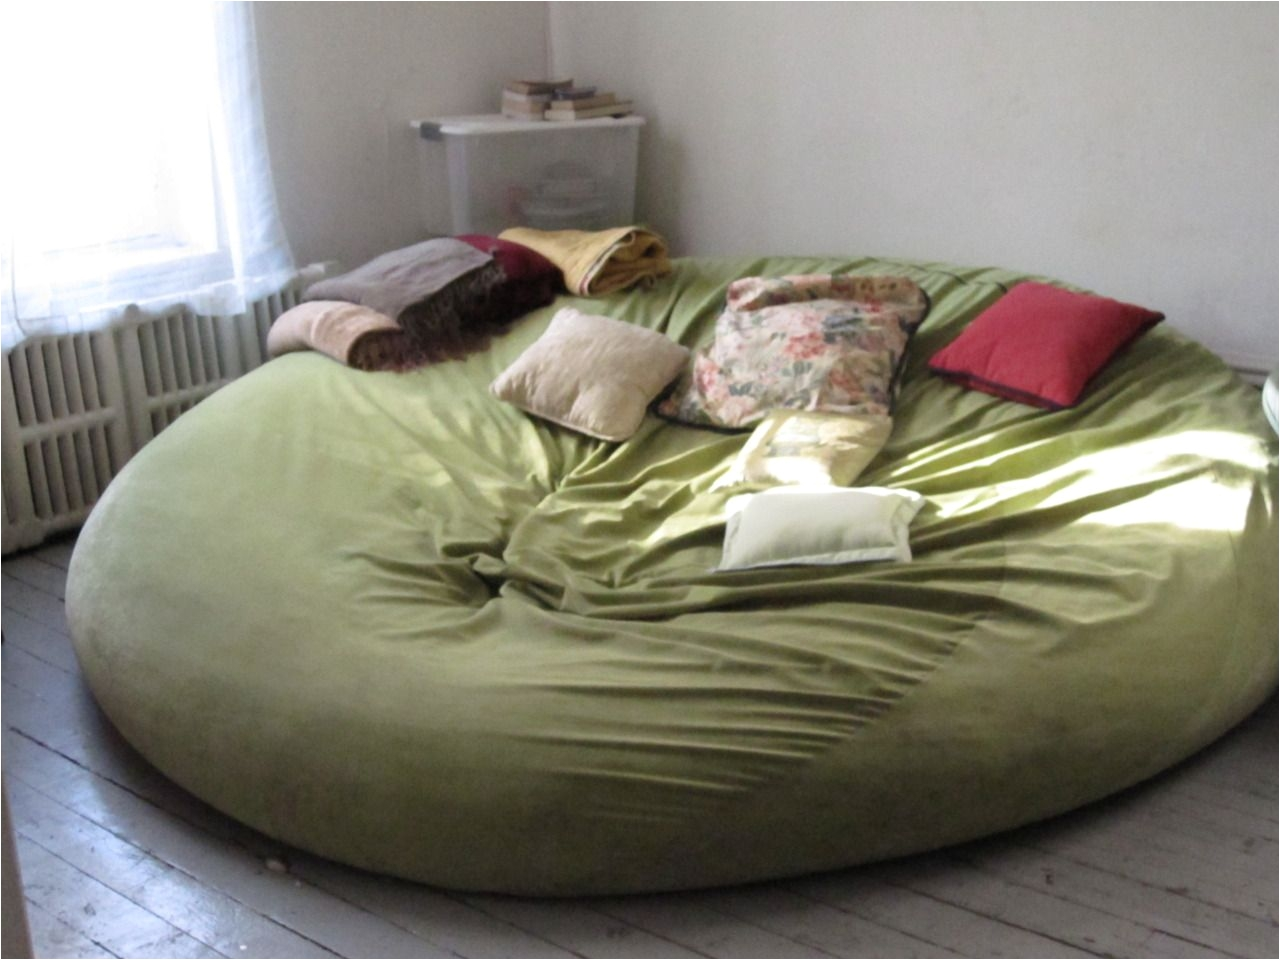 Big Bag Chairs Funny Bean Bag Chairs Biggest Bean Bag Chair Bed I Ve Ever Seen In